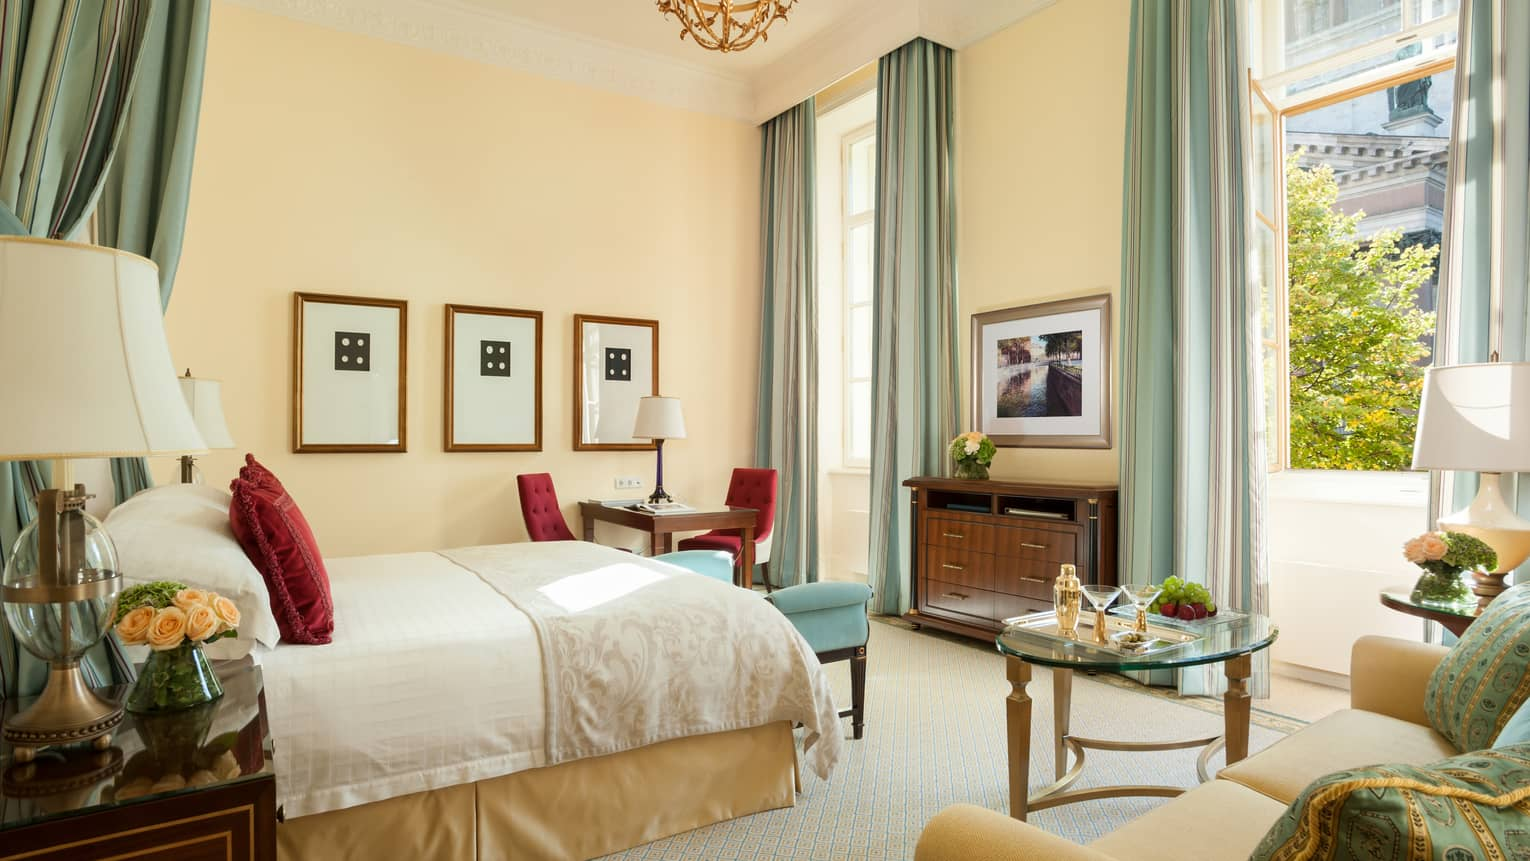 Four Seasons room with bed, loveseat, desk under high ceiling, pale blue and gold decor